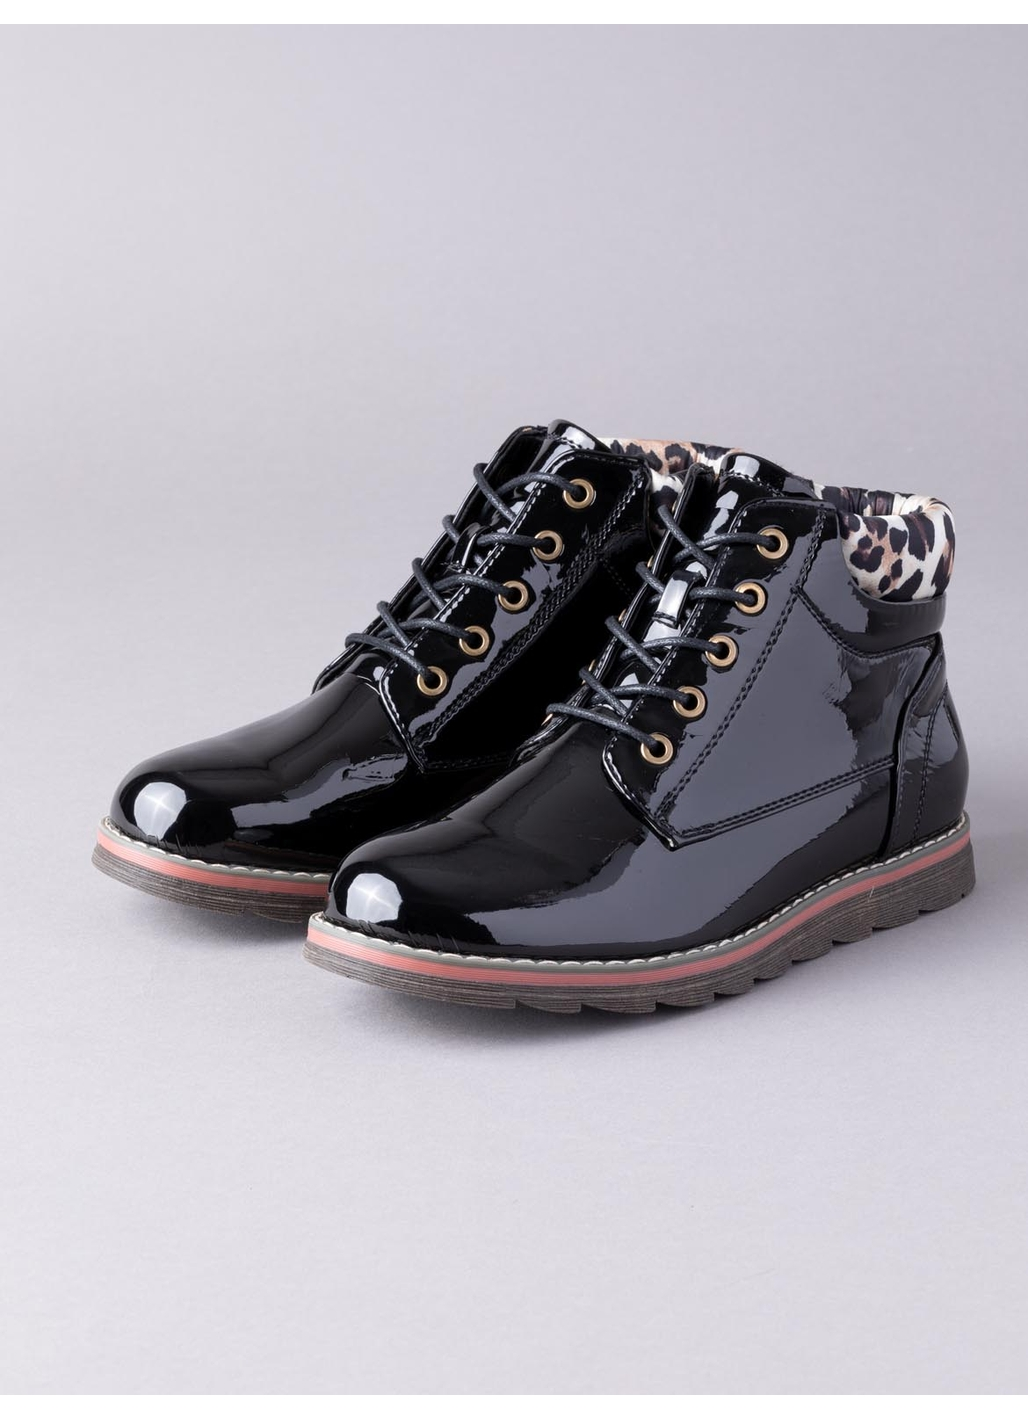 Lotus Naomi Ankle Boots in Black